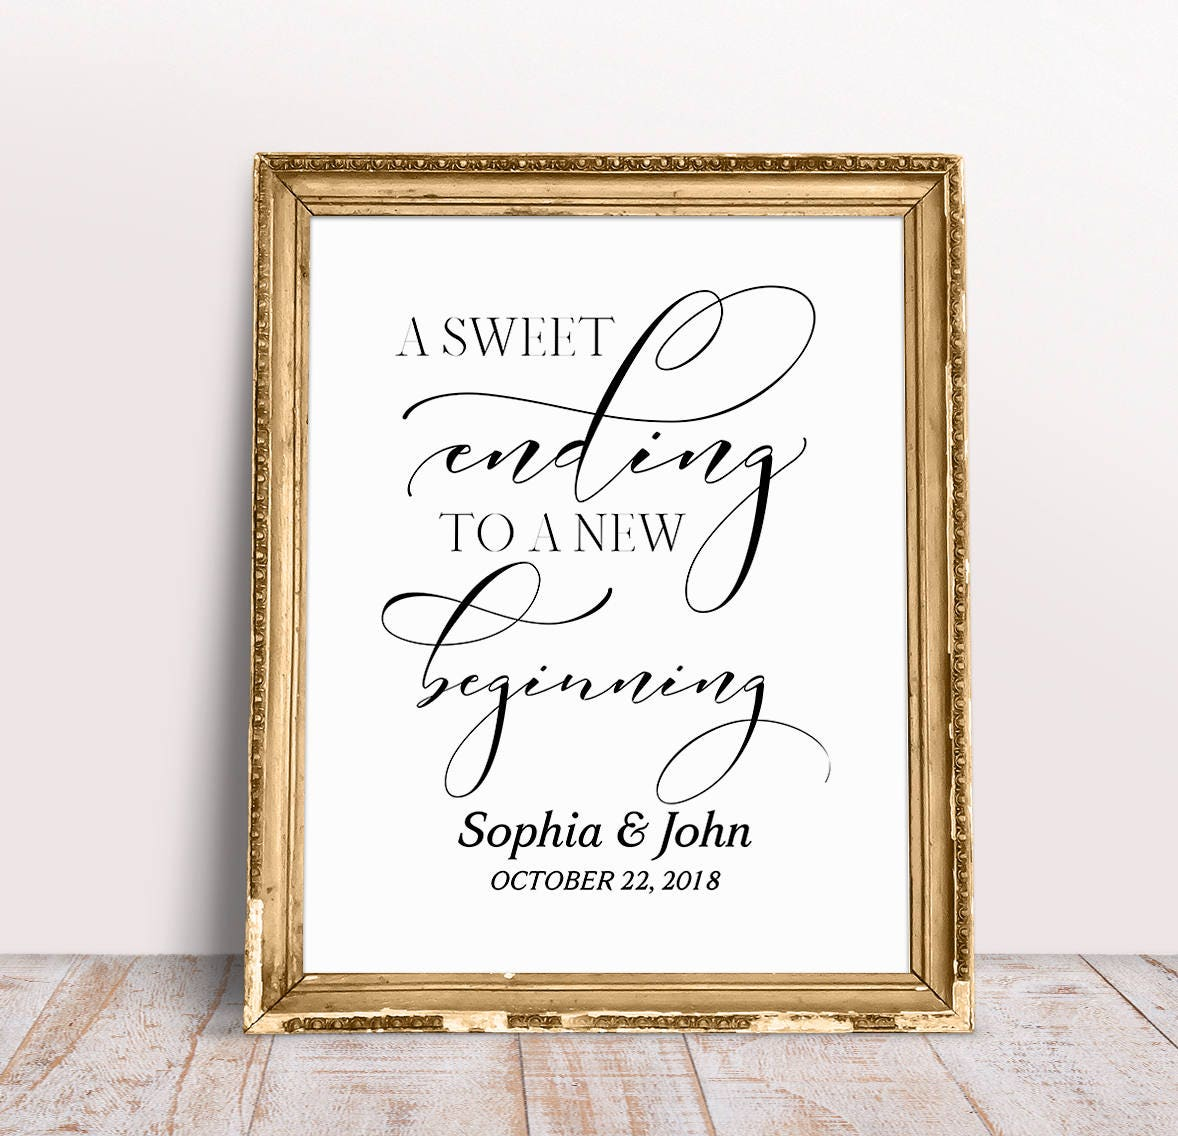 A Sweet Ending To A New Beginning Wedding Favors Sign